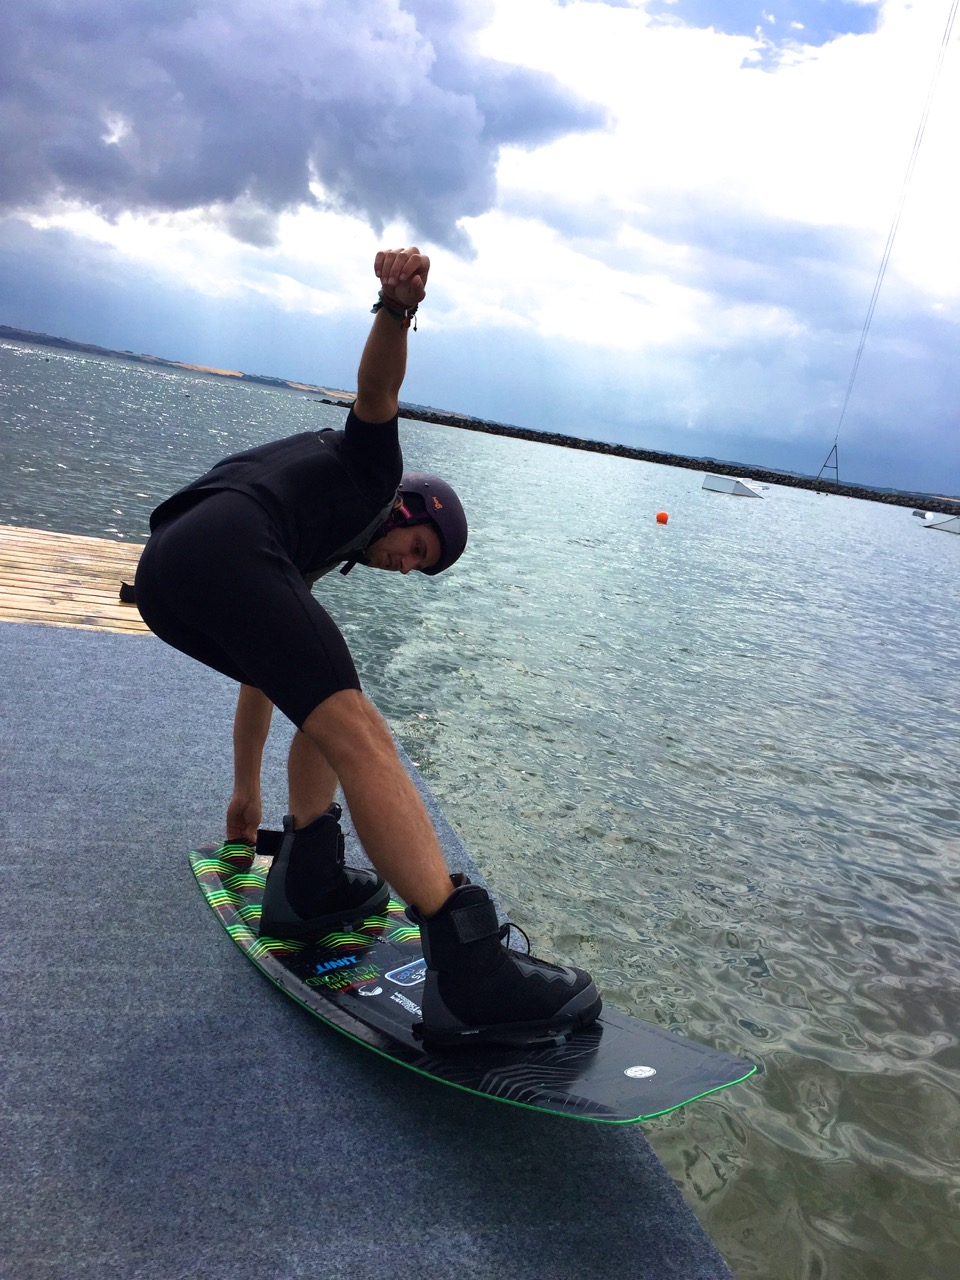 At Thy Cable Park in Thisted